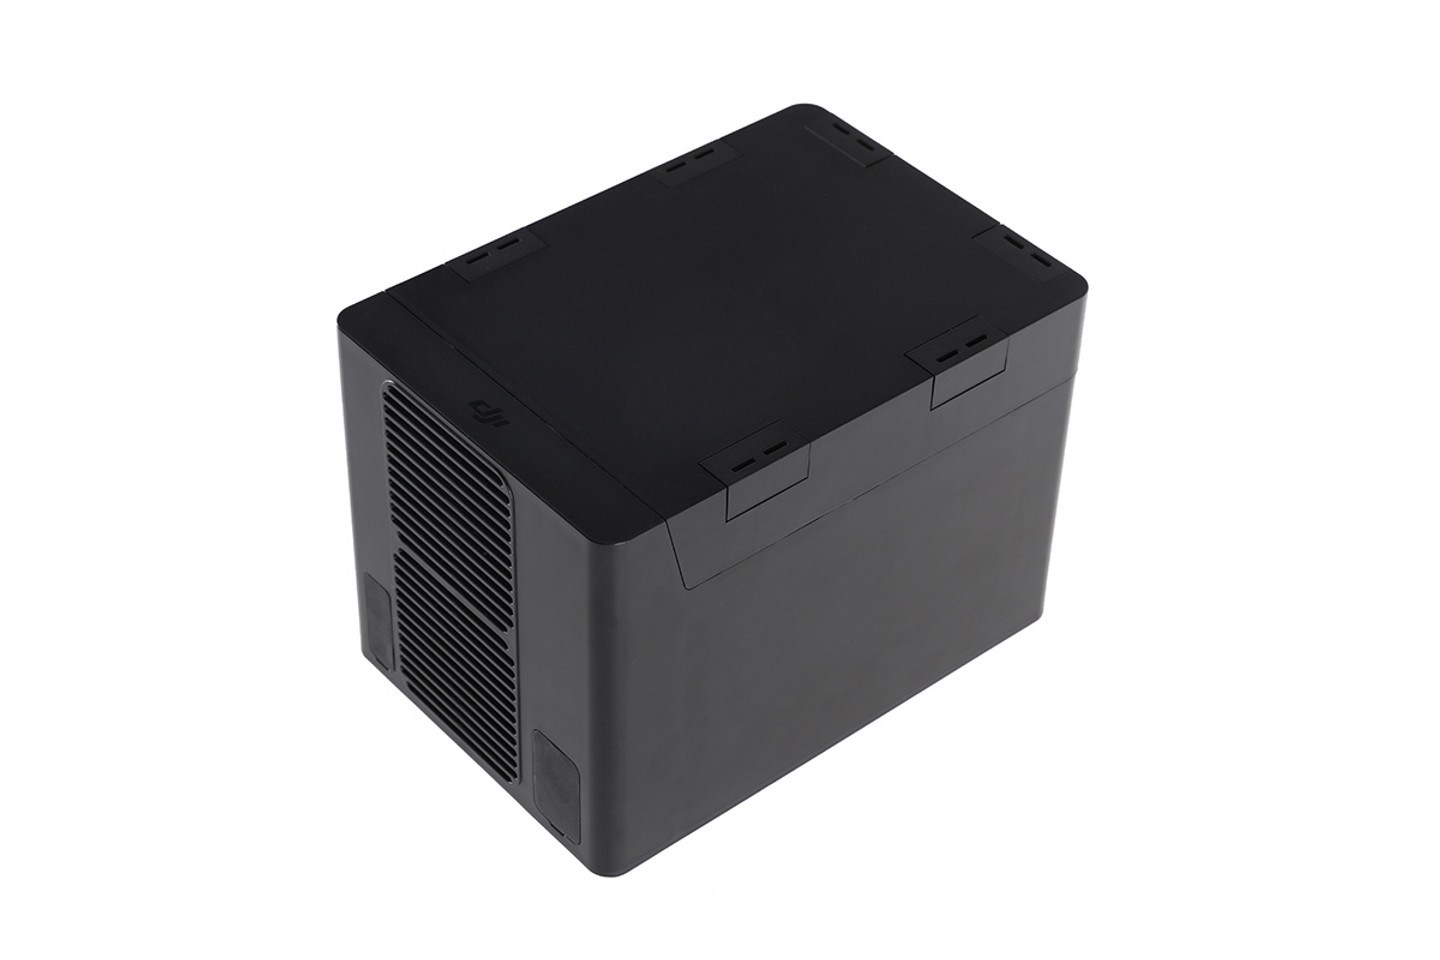 DJI Hex Charger